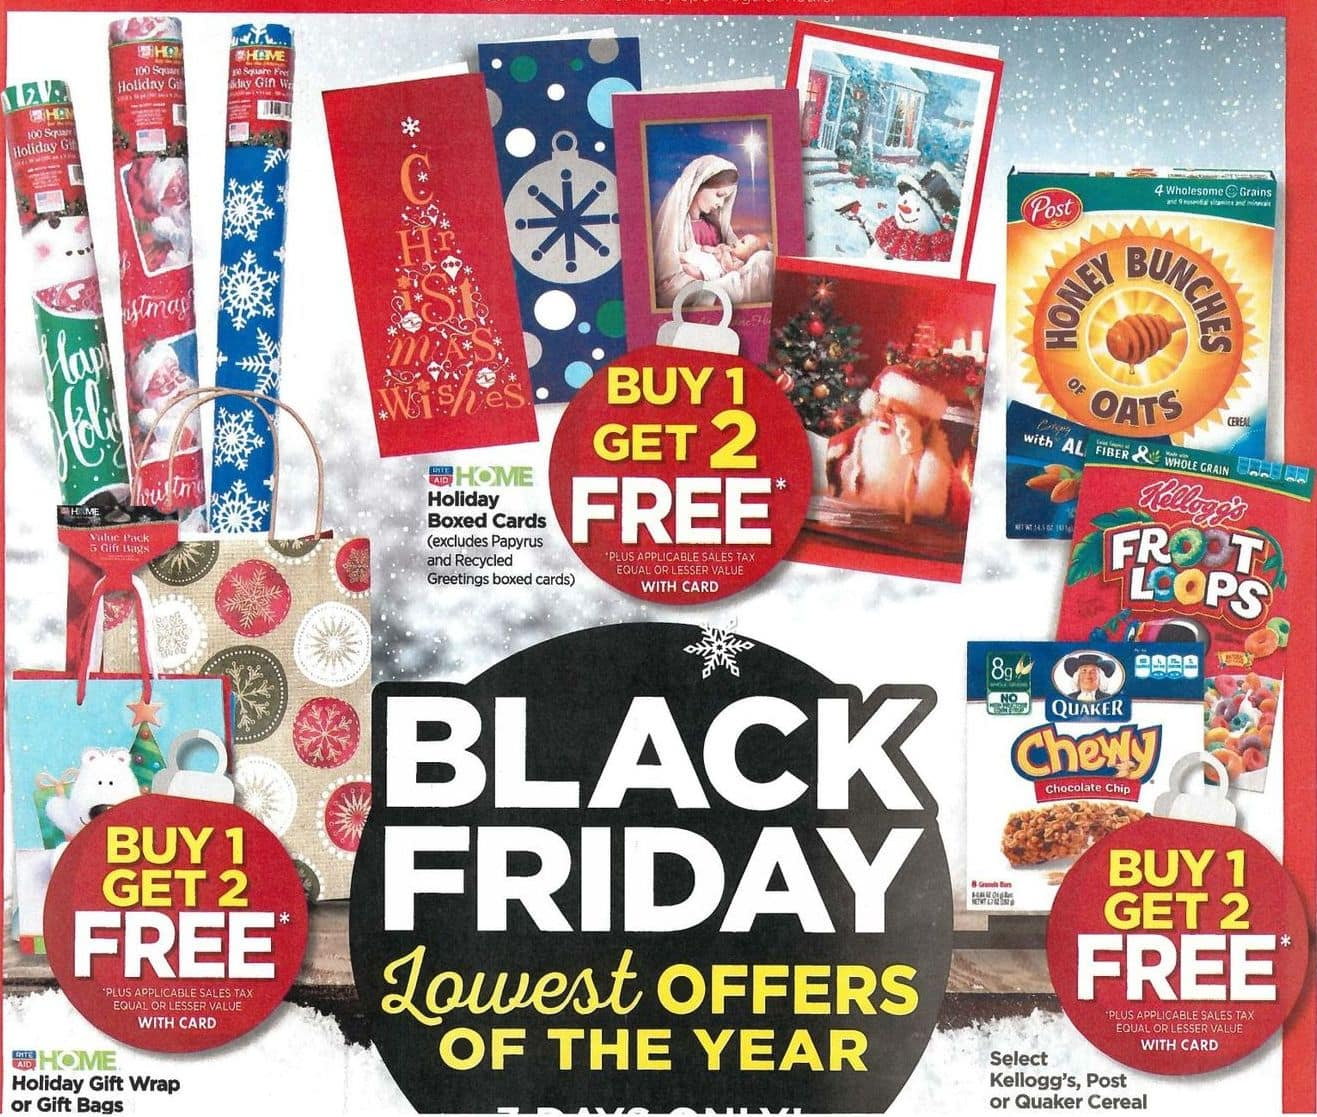 Rite Aid Black Friday: Holiday Gift Wrap or Gift Bags, Your Choice - B1G2 Free